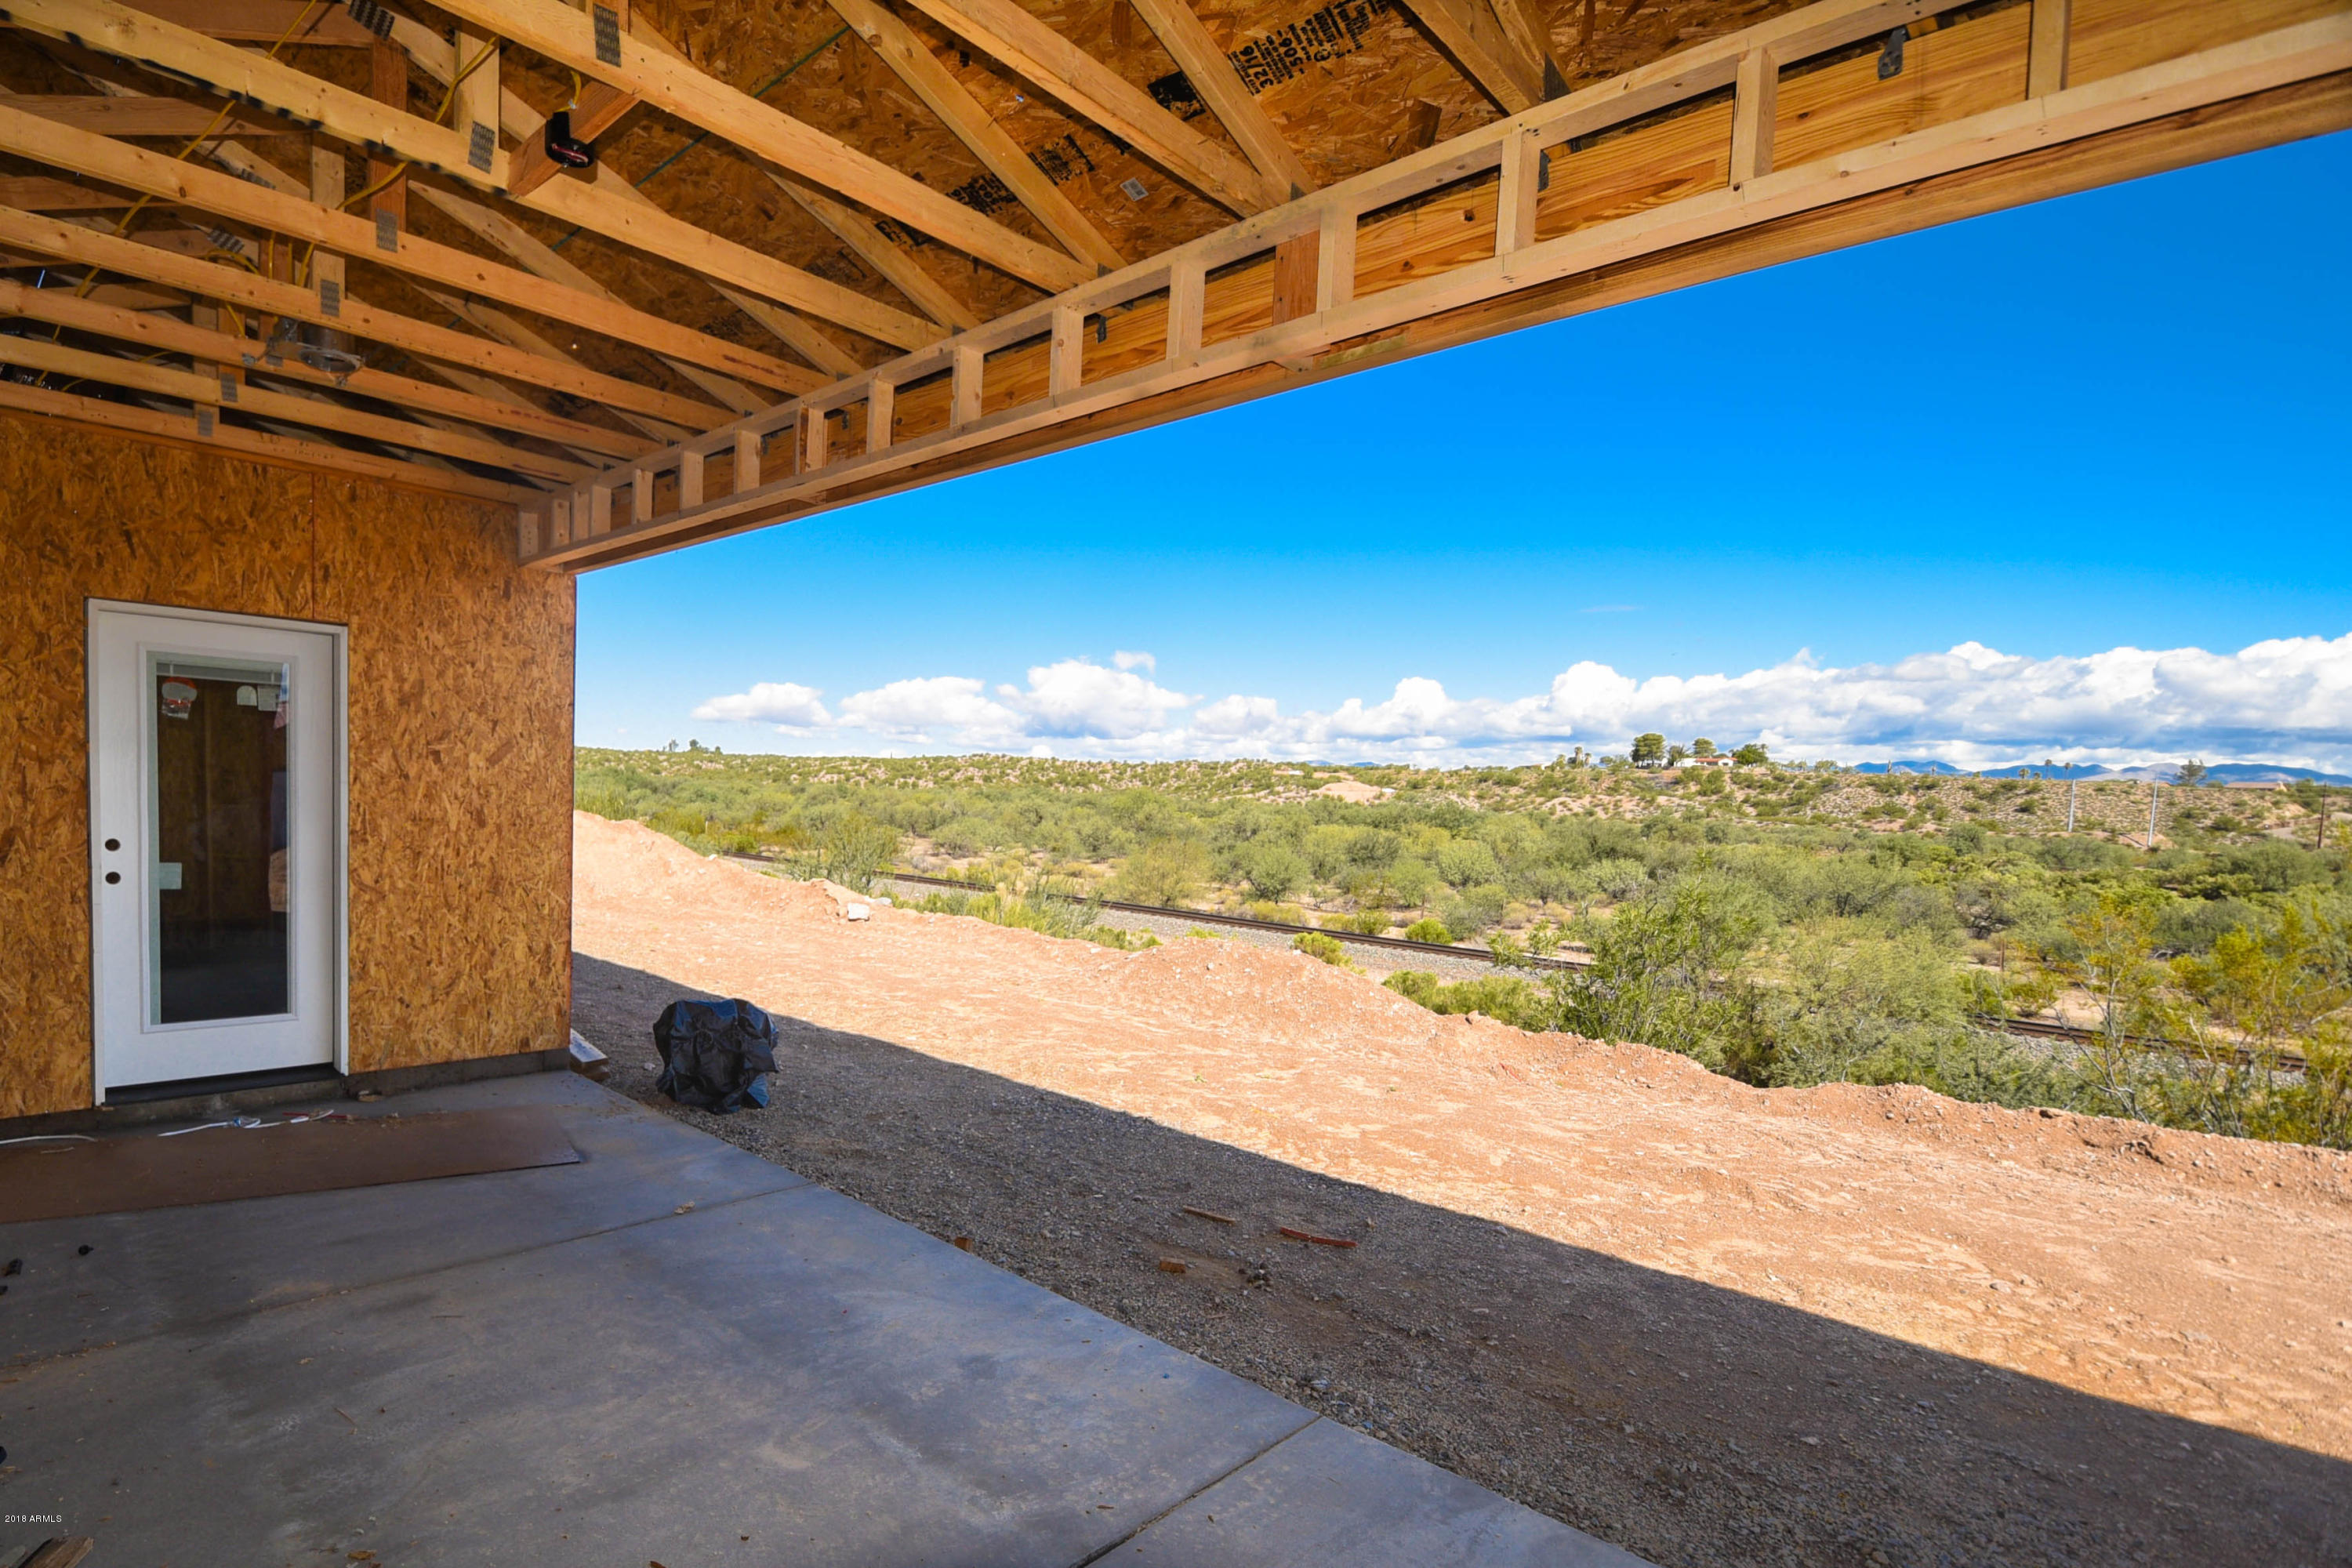 MLS 5831822 930 W Mclean Drive, Wickenburg, AZ 85390 Wickenburg AZ Mariposa Heights